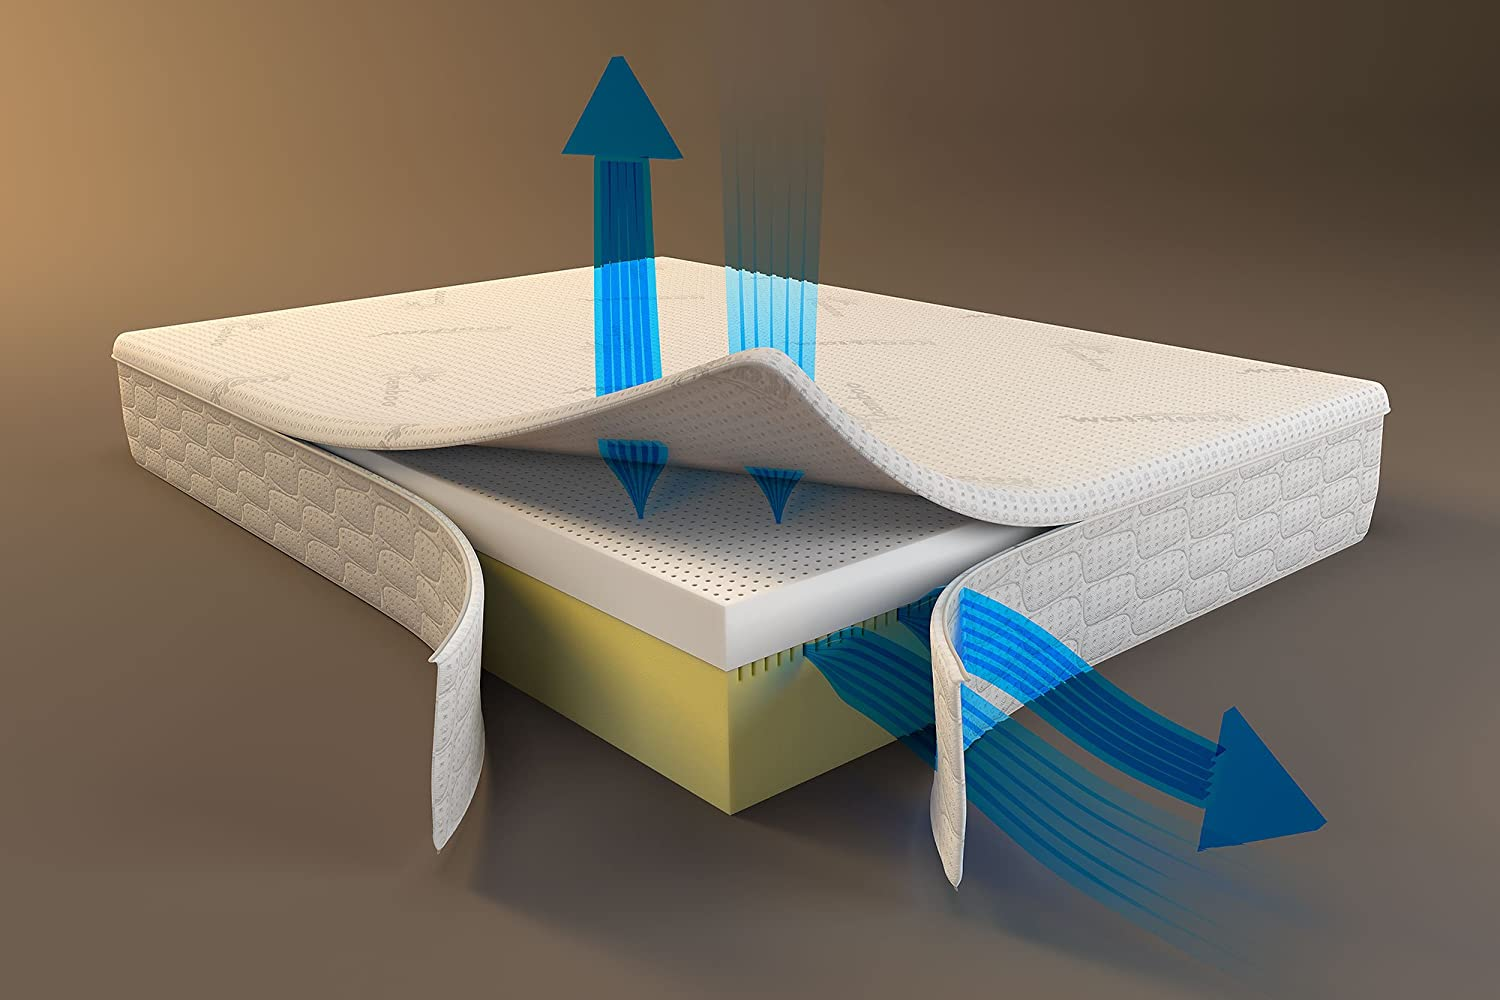 Snuggle-Pedic Mattress That Breathes – Patented Airflow Transfer System